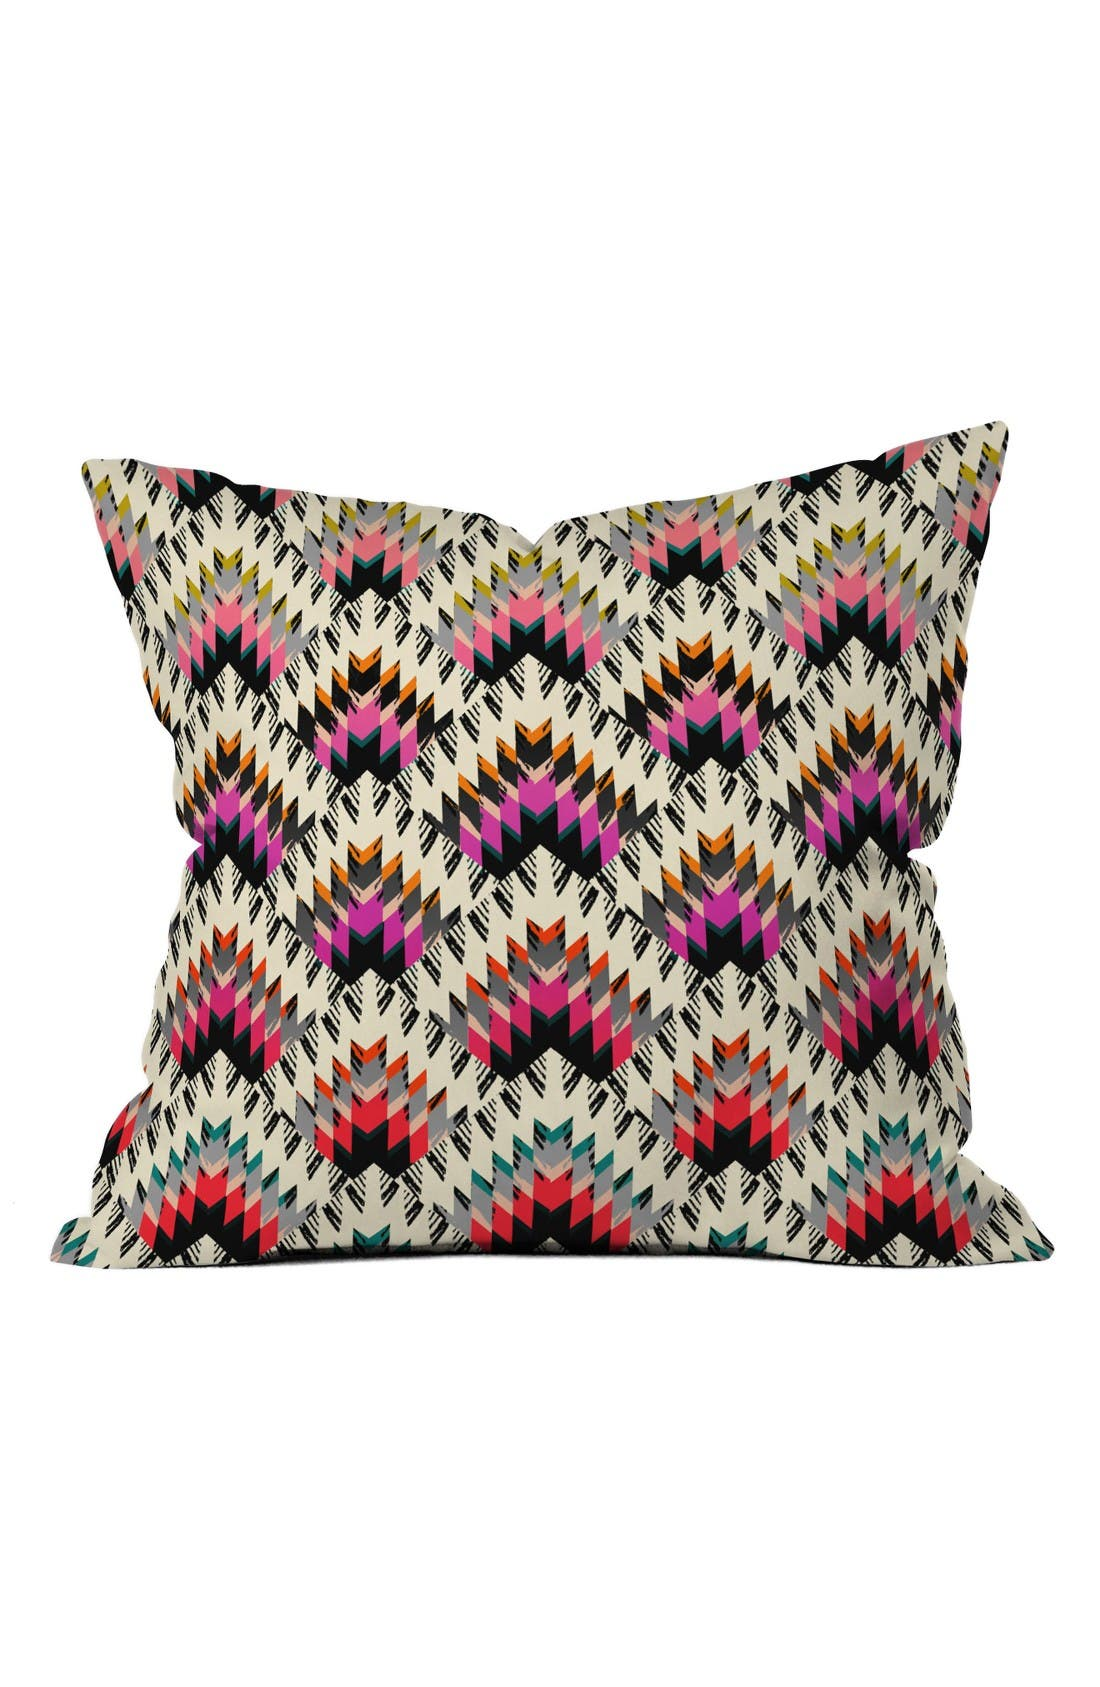 Alternate Image 1 Selected - Deny Designs State Peaks Pillow